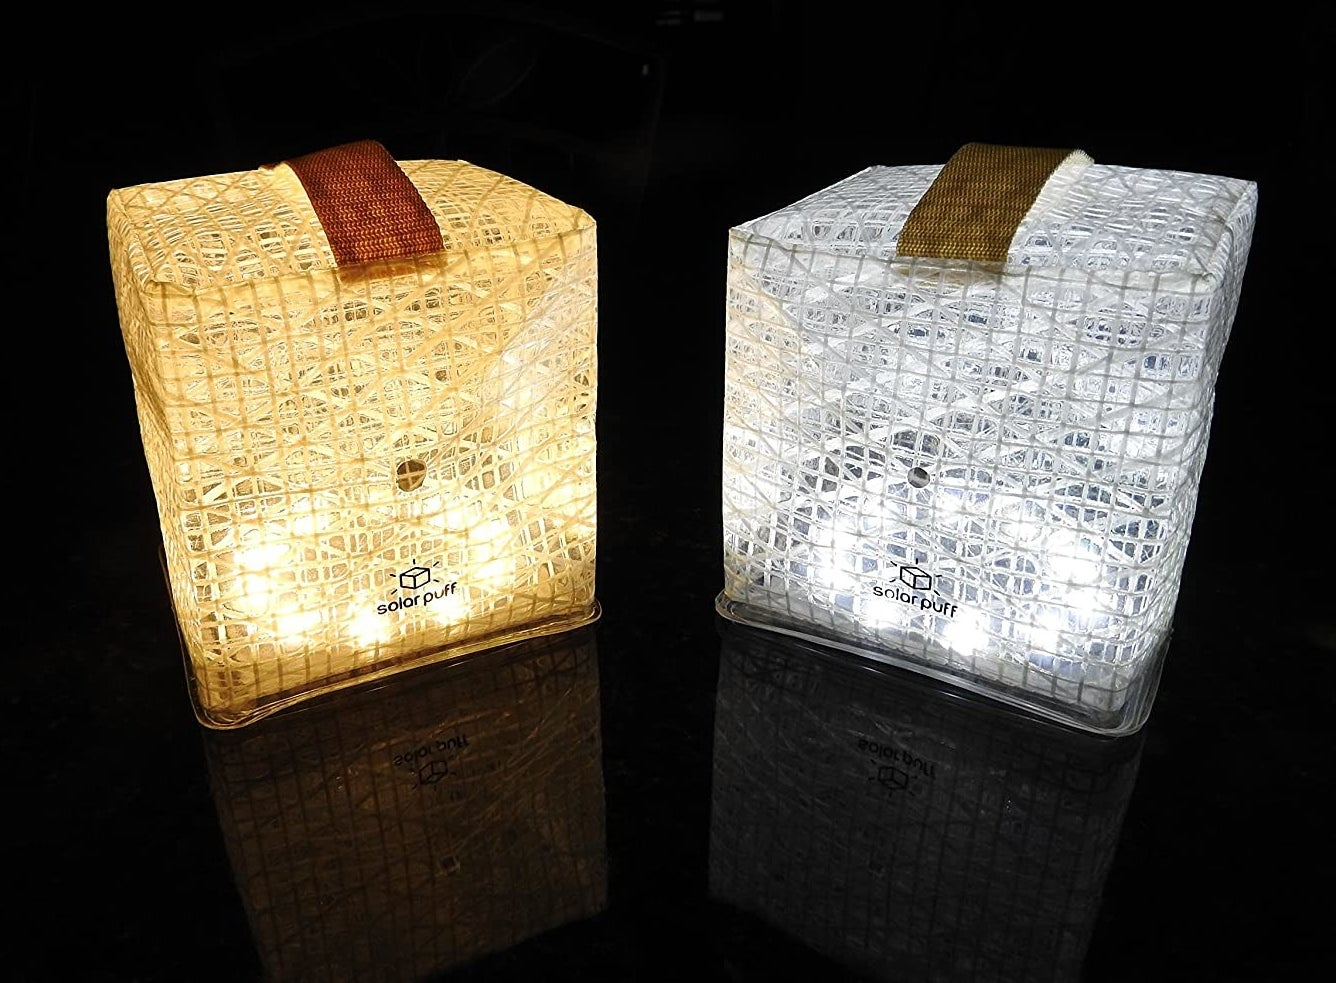 Two solar lights lit up in a dark room